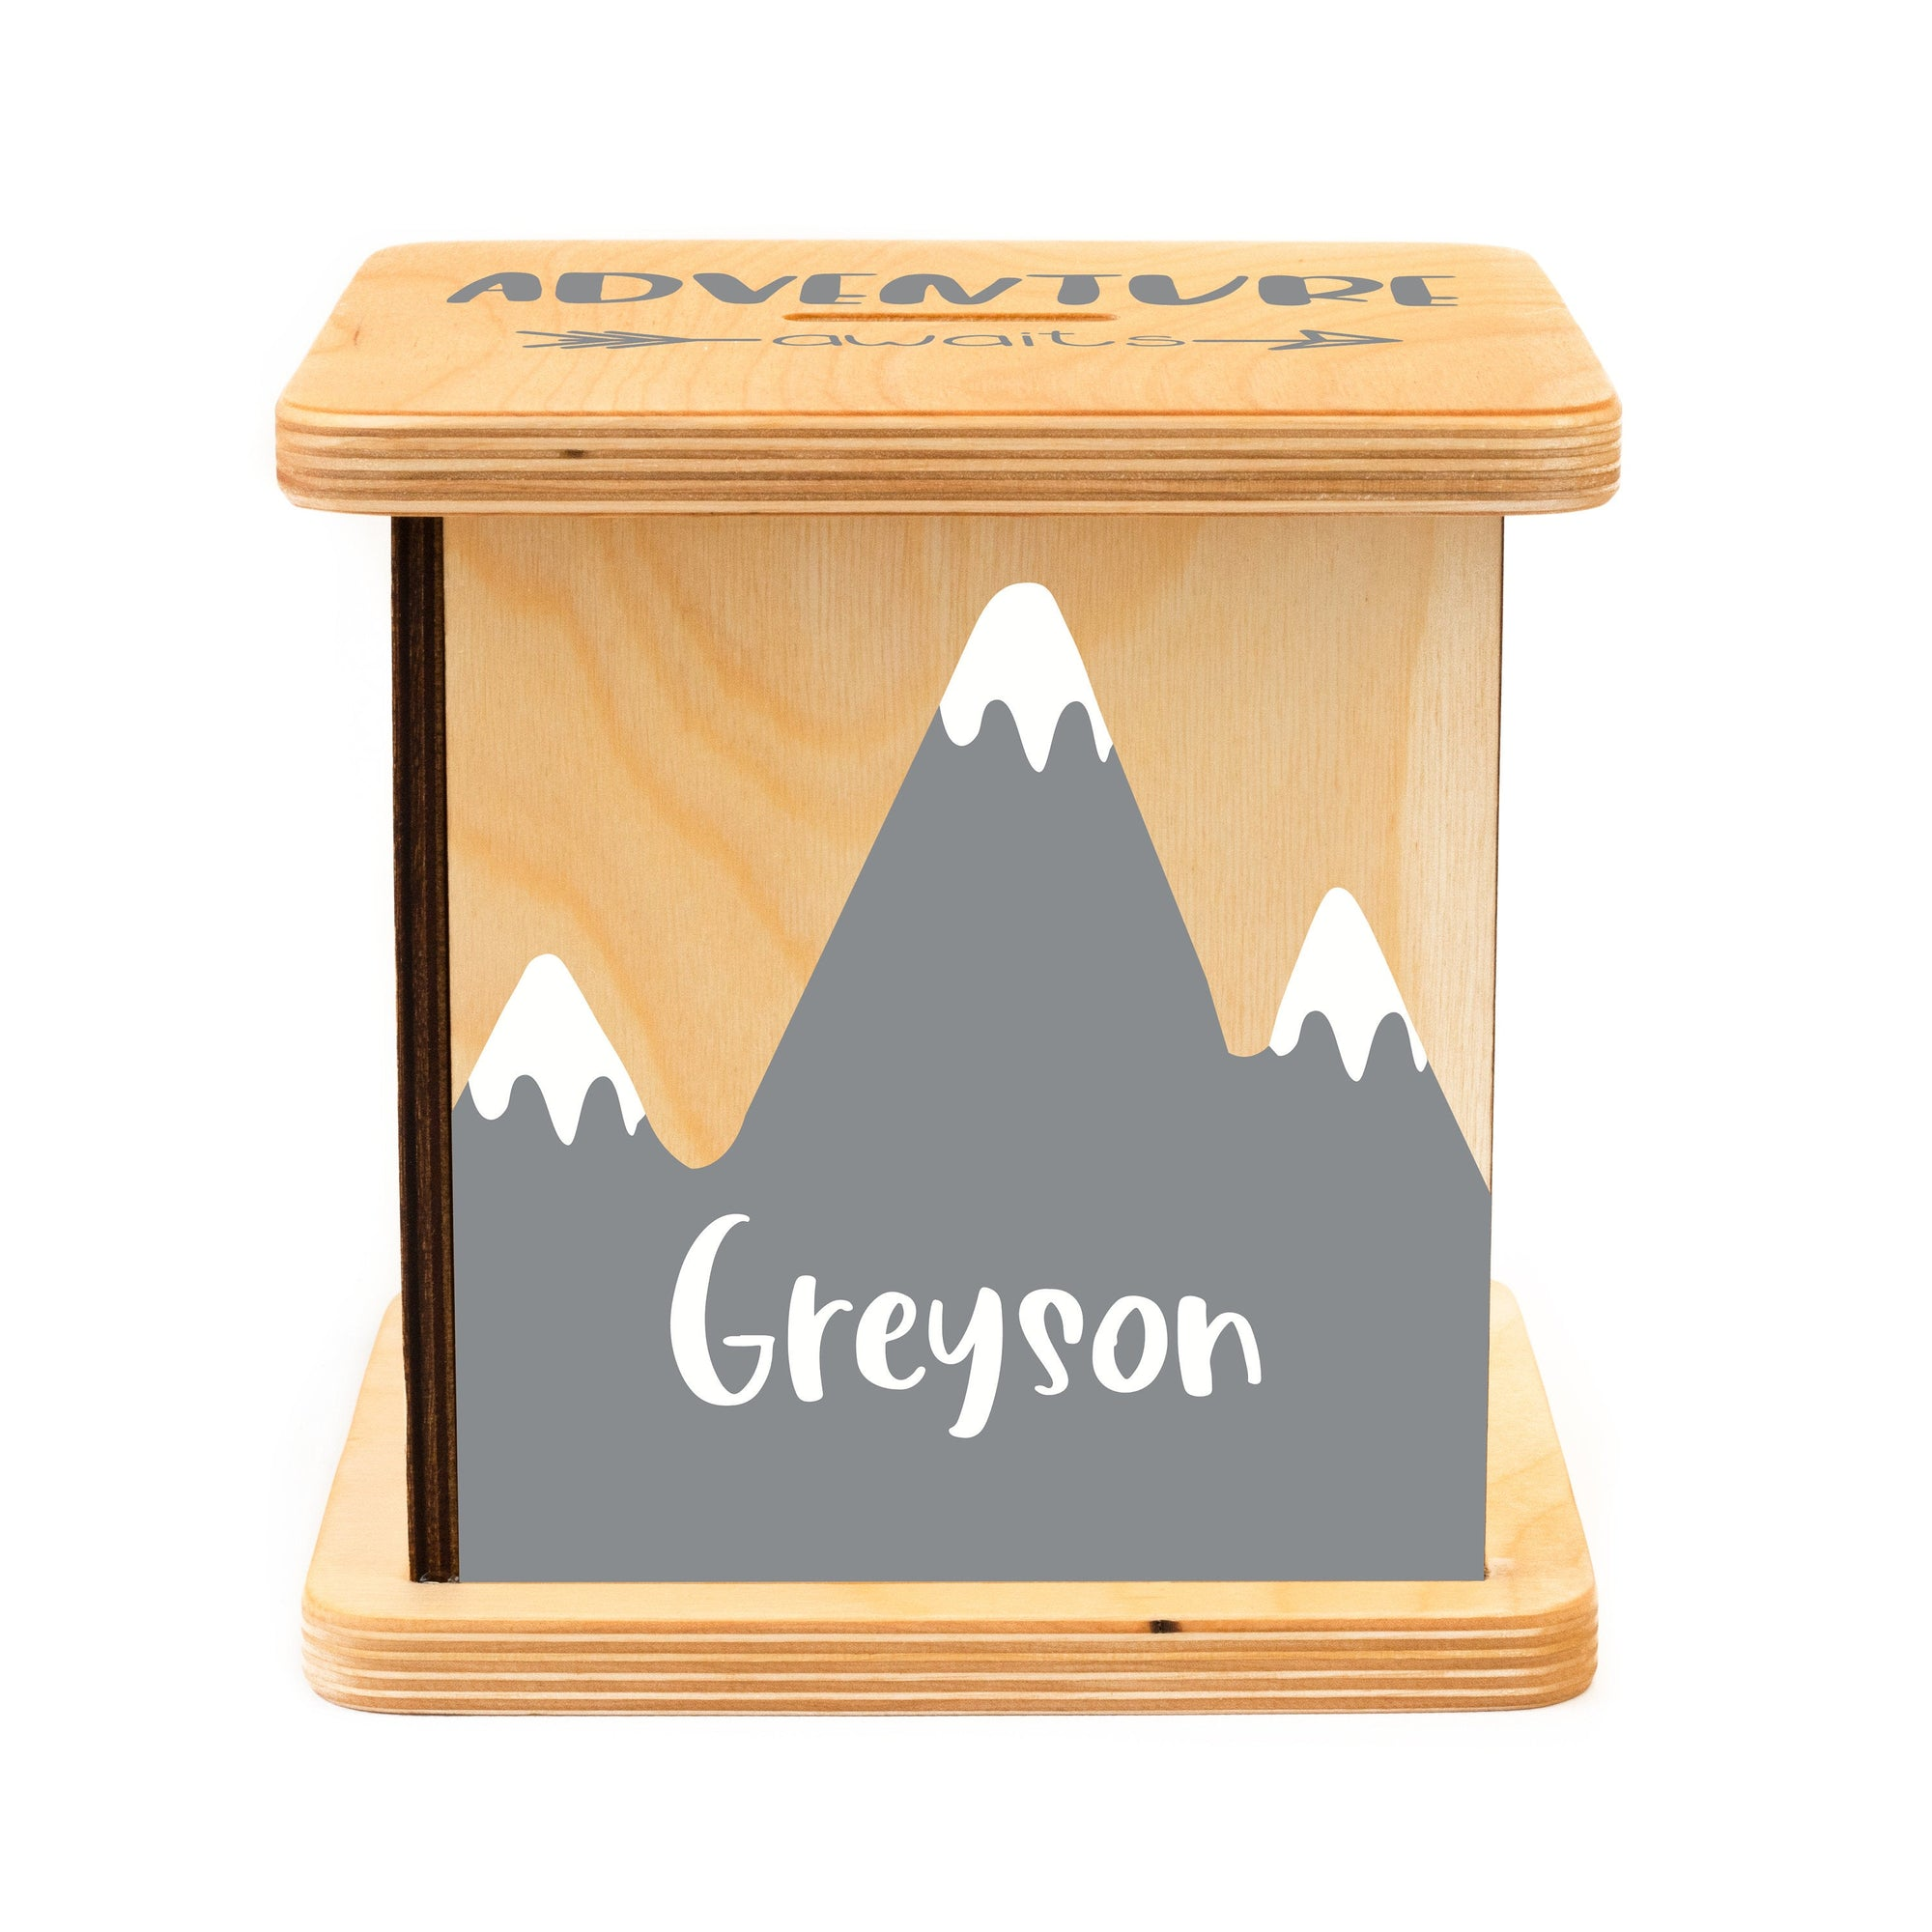 Personalized Piggy Bank, Kids Room Decor, Adventure Baby Shower